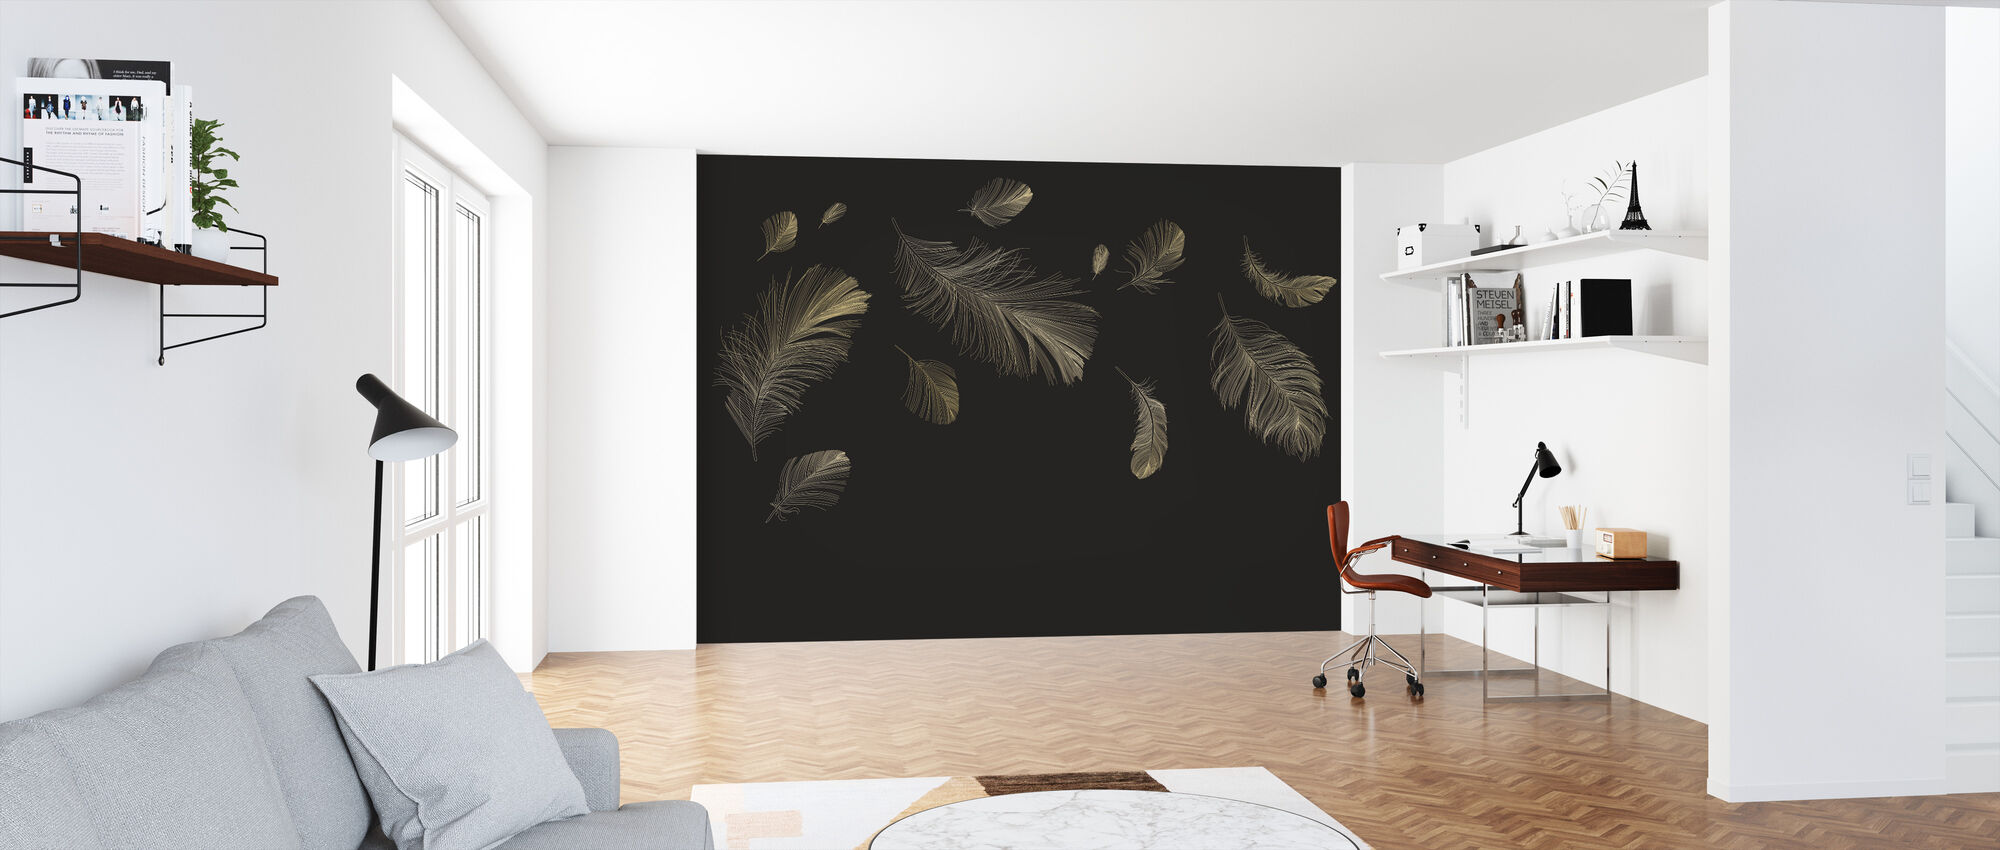 Flying Feathers - Brown - Wallpaper - Office